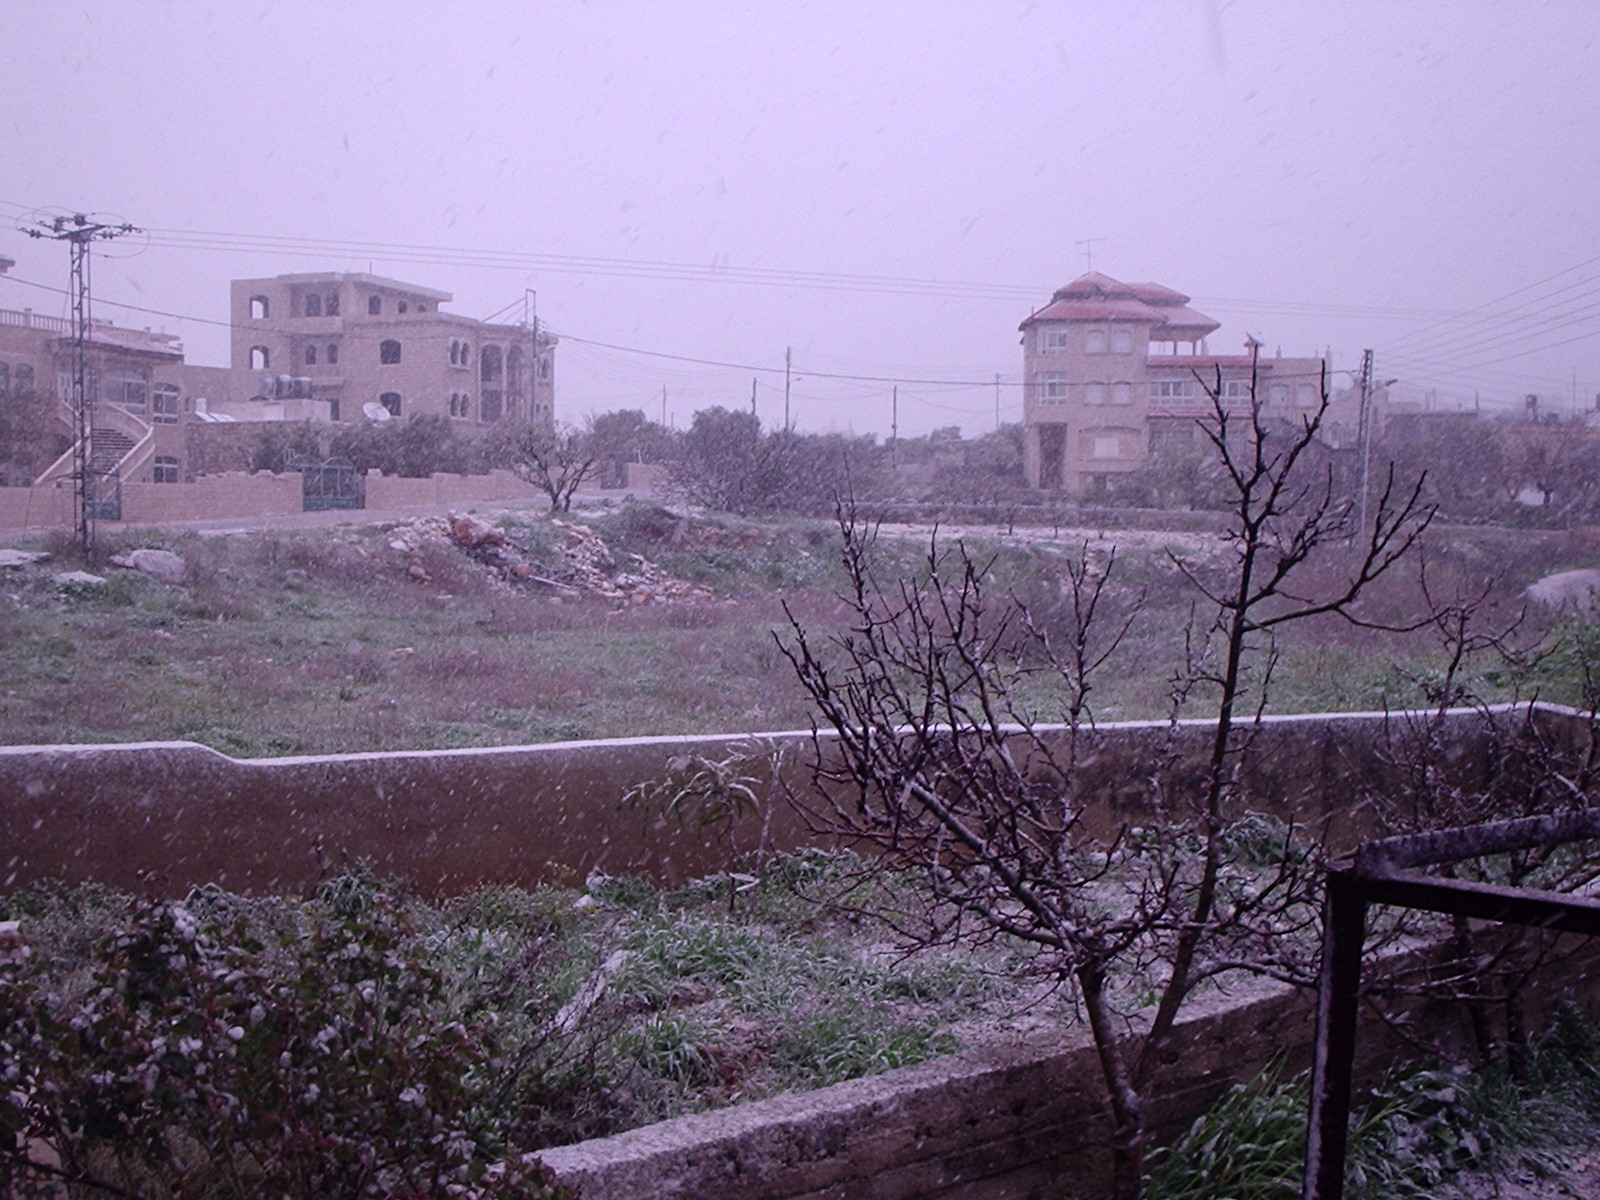 Surda - سرده : During the snowy season